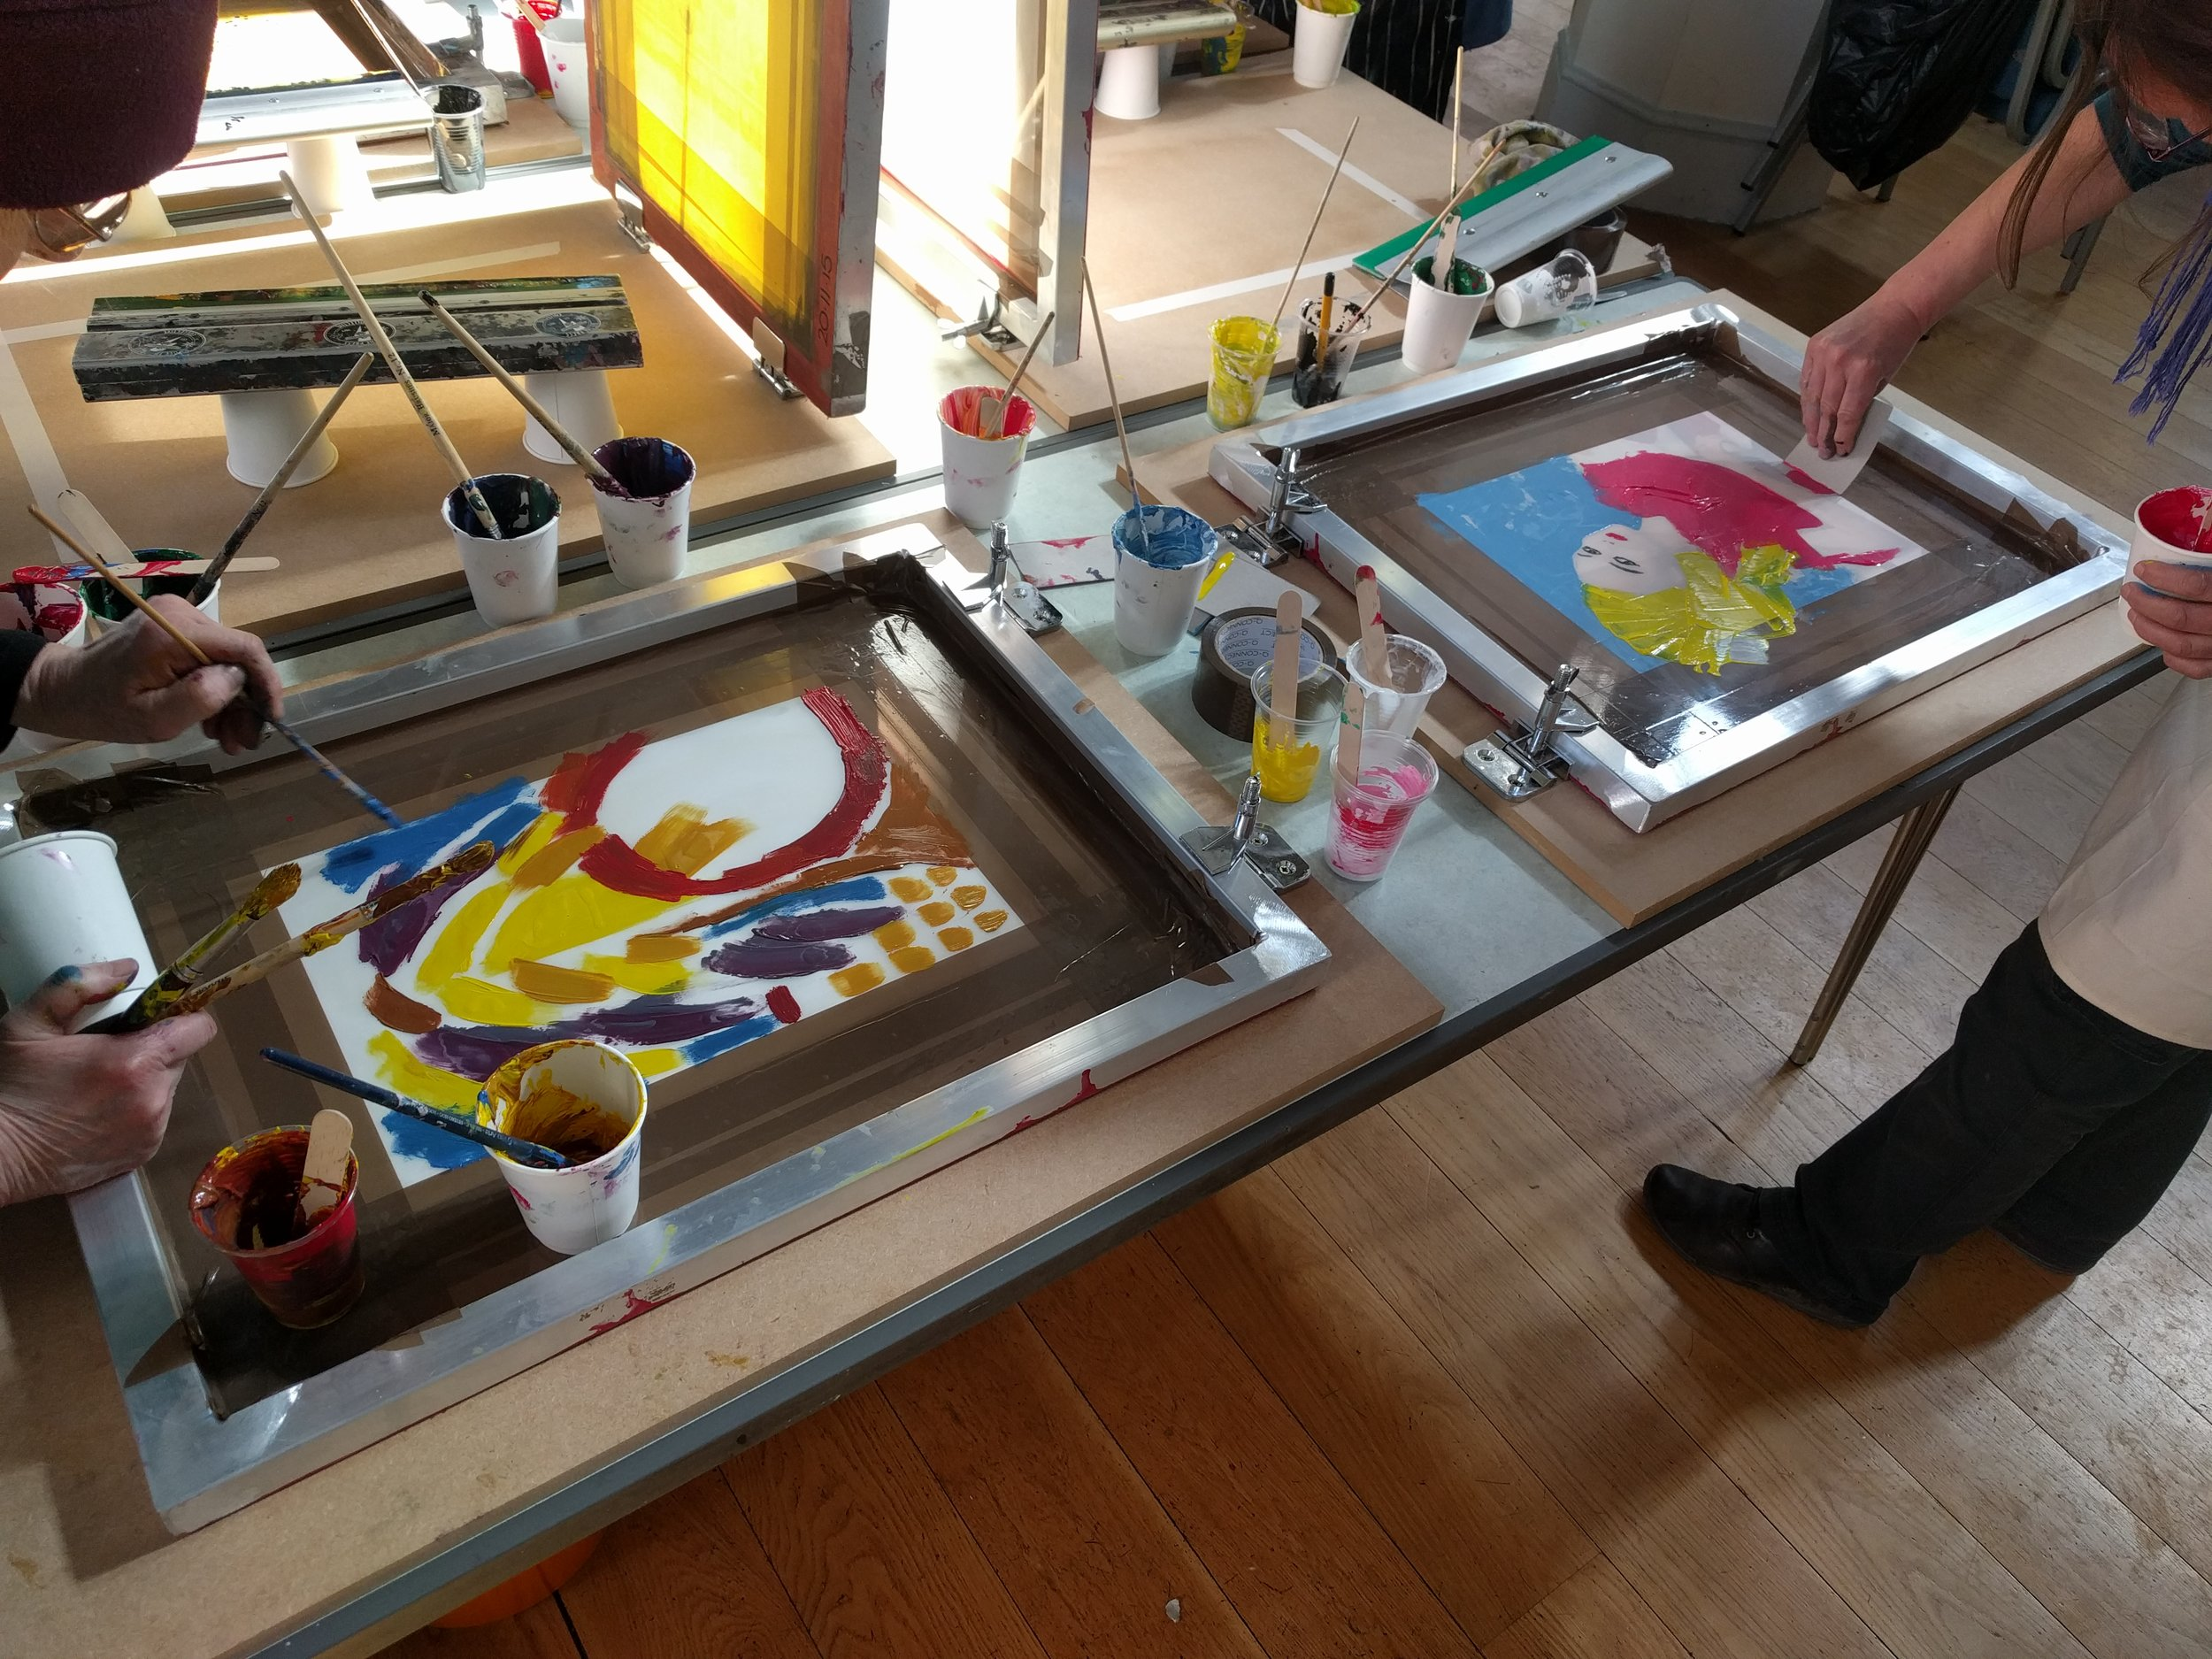 SATURDAY 21ST SEPTEMBER2.00 – 4.00PM - Experimental screen printing workshop with Off the press collective. This workshop is an introduction into the process or a refresher for those who would like to revisit it. We shall introduce the screen printing process and demonstrate a few printing methods. Under our guidance you will then have the opportunity to work with stencils, experiment with colours and blends. All materials are provided. You just need yourself and an apron. We always suggest bringing some reference material or having an idea of what you would like to print so you can get cracking.Off the Press are a printmaking collective based in Bury St Edmunds.Size : 10 participantsWorkshop Leaders: Sam, James and Anna.